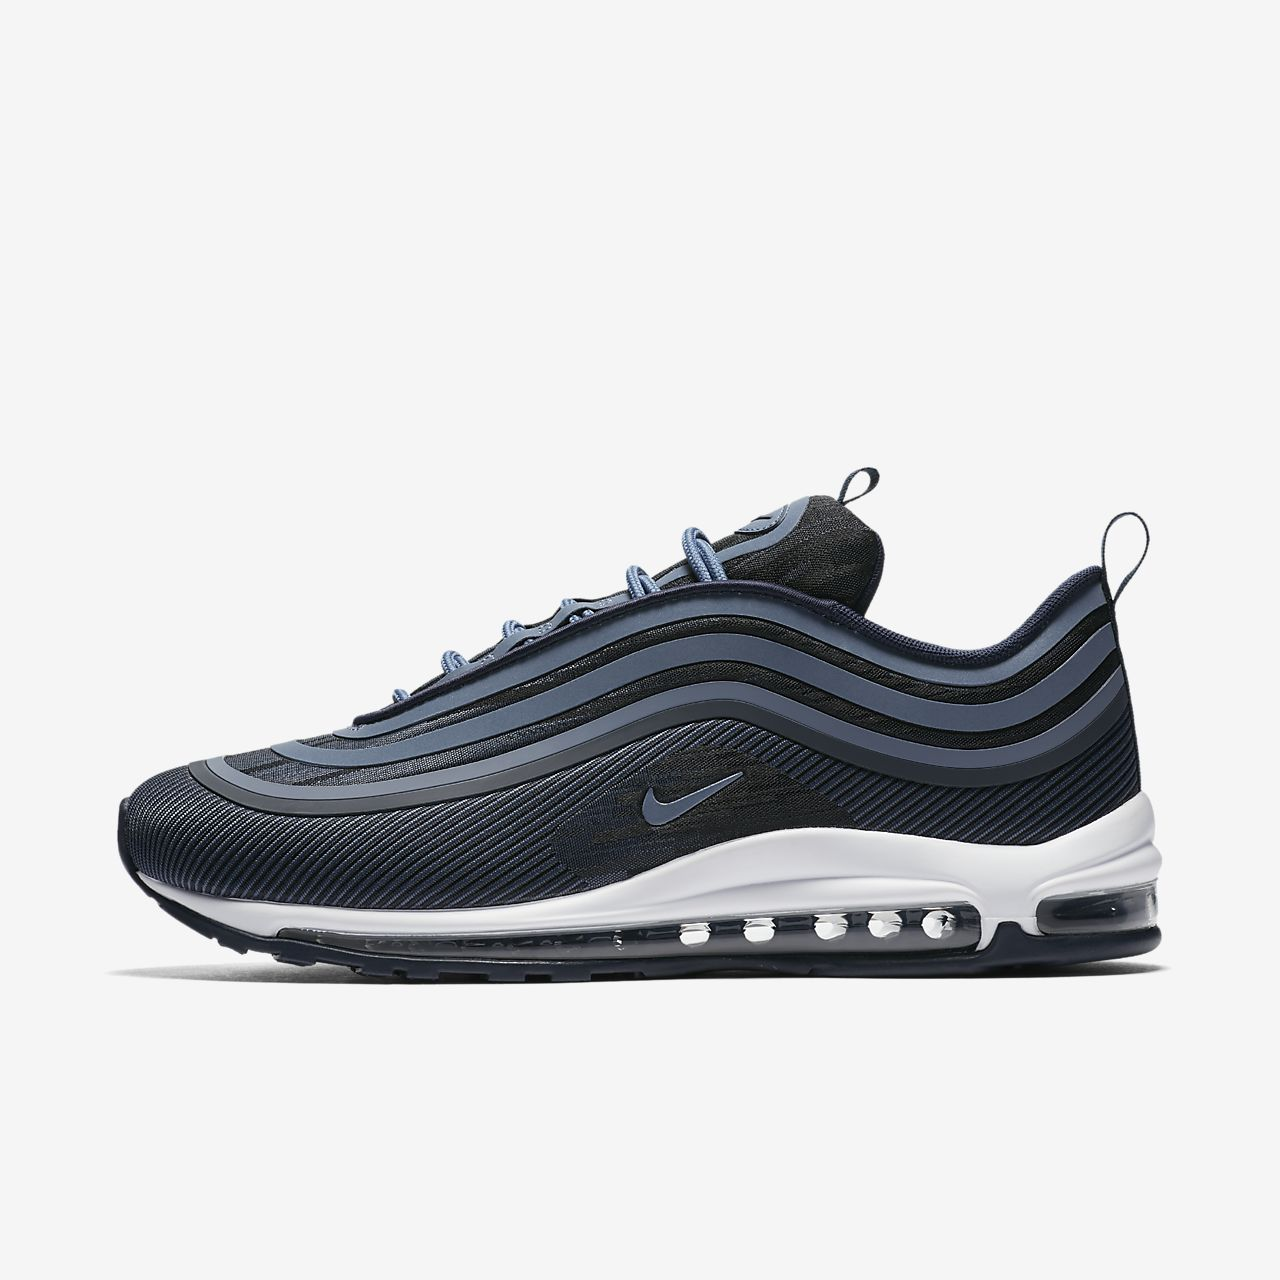 ... Chaussure Nike Air Max 97 Ultra '17 pour Homme